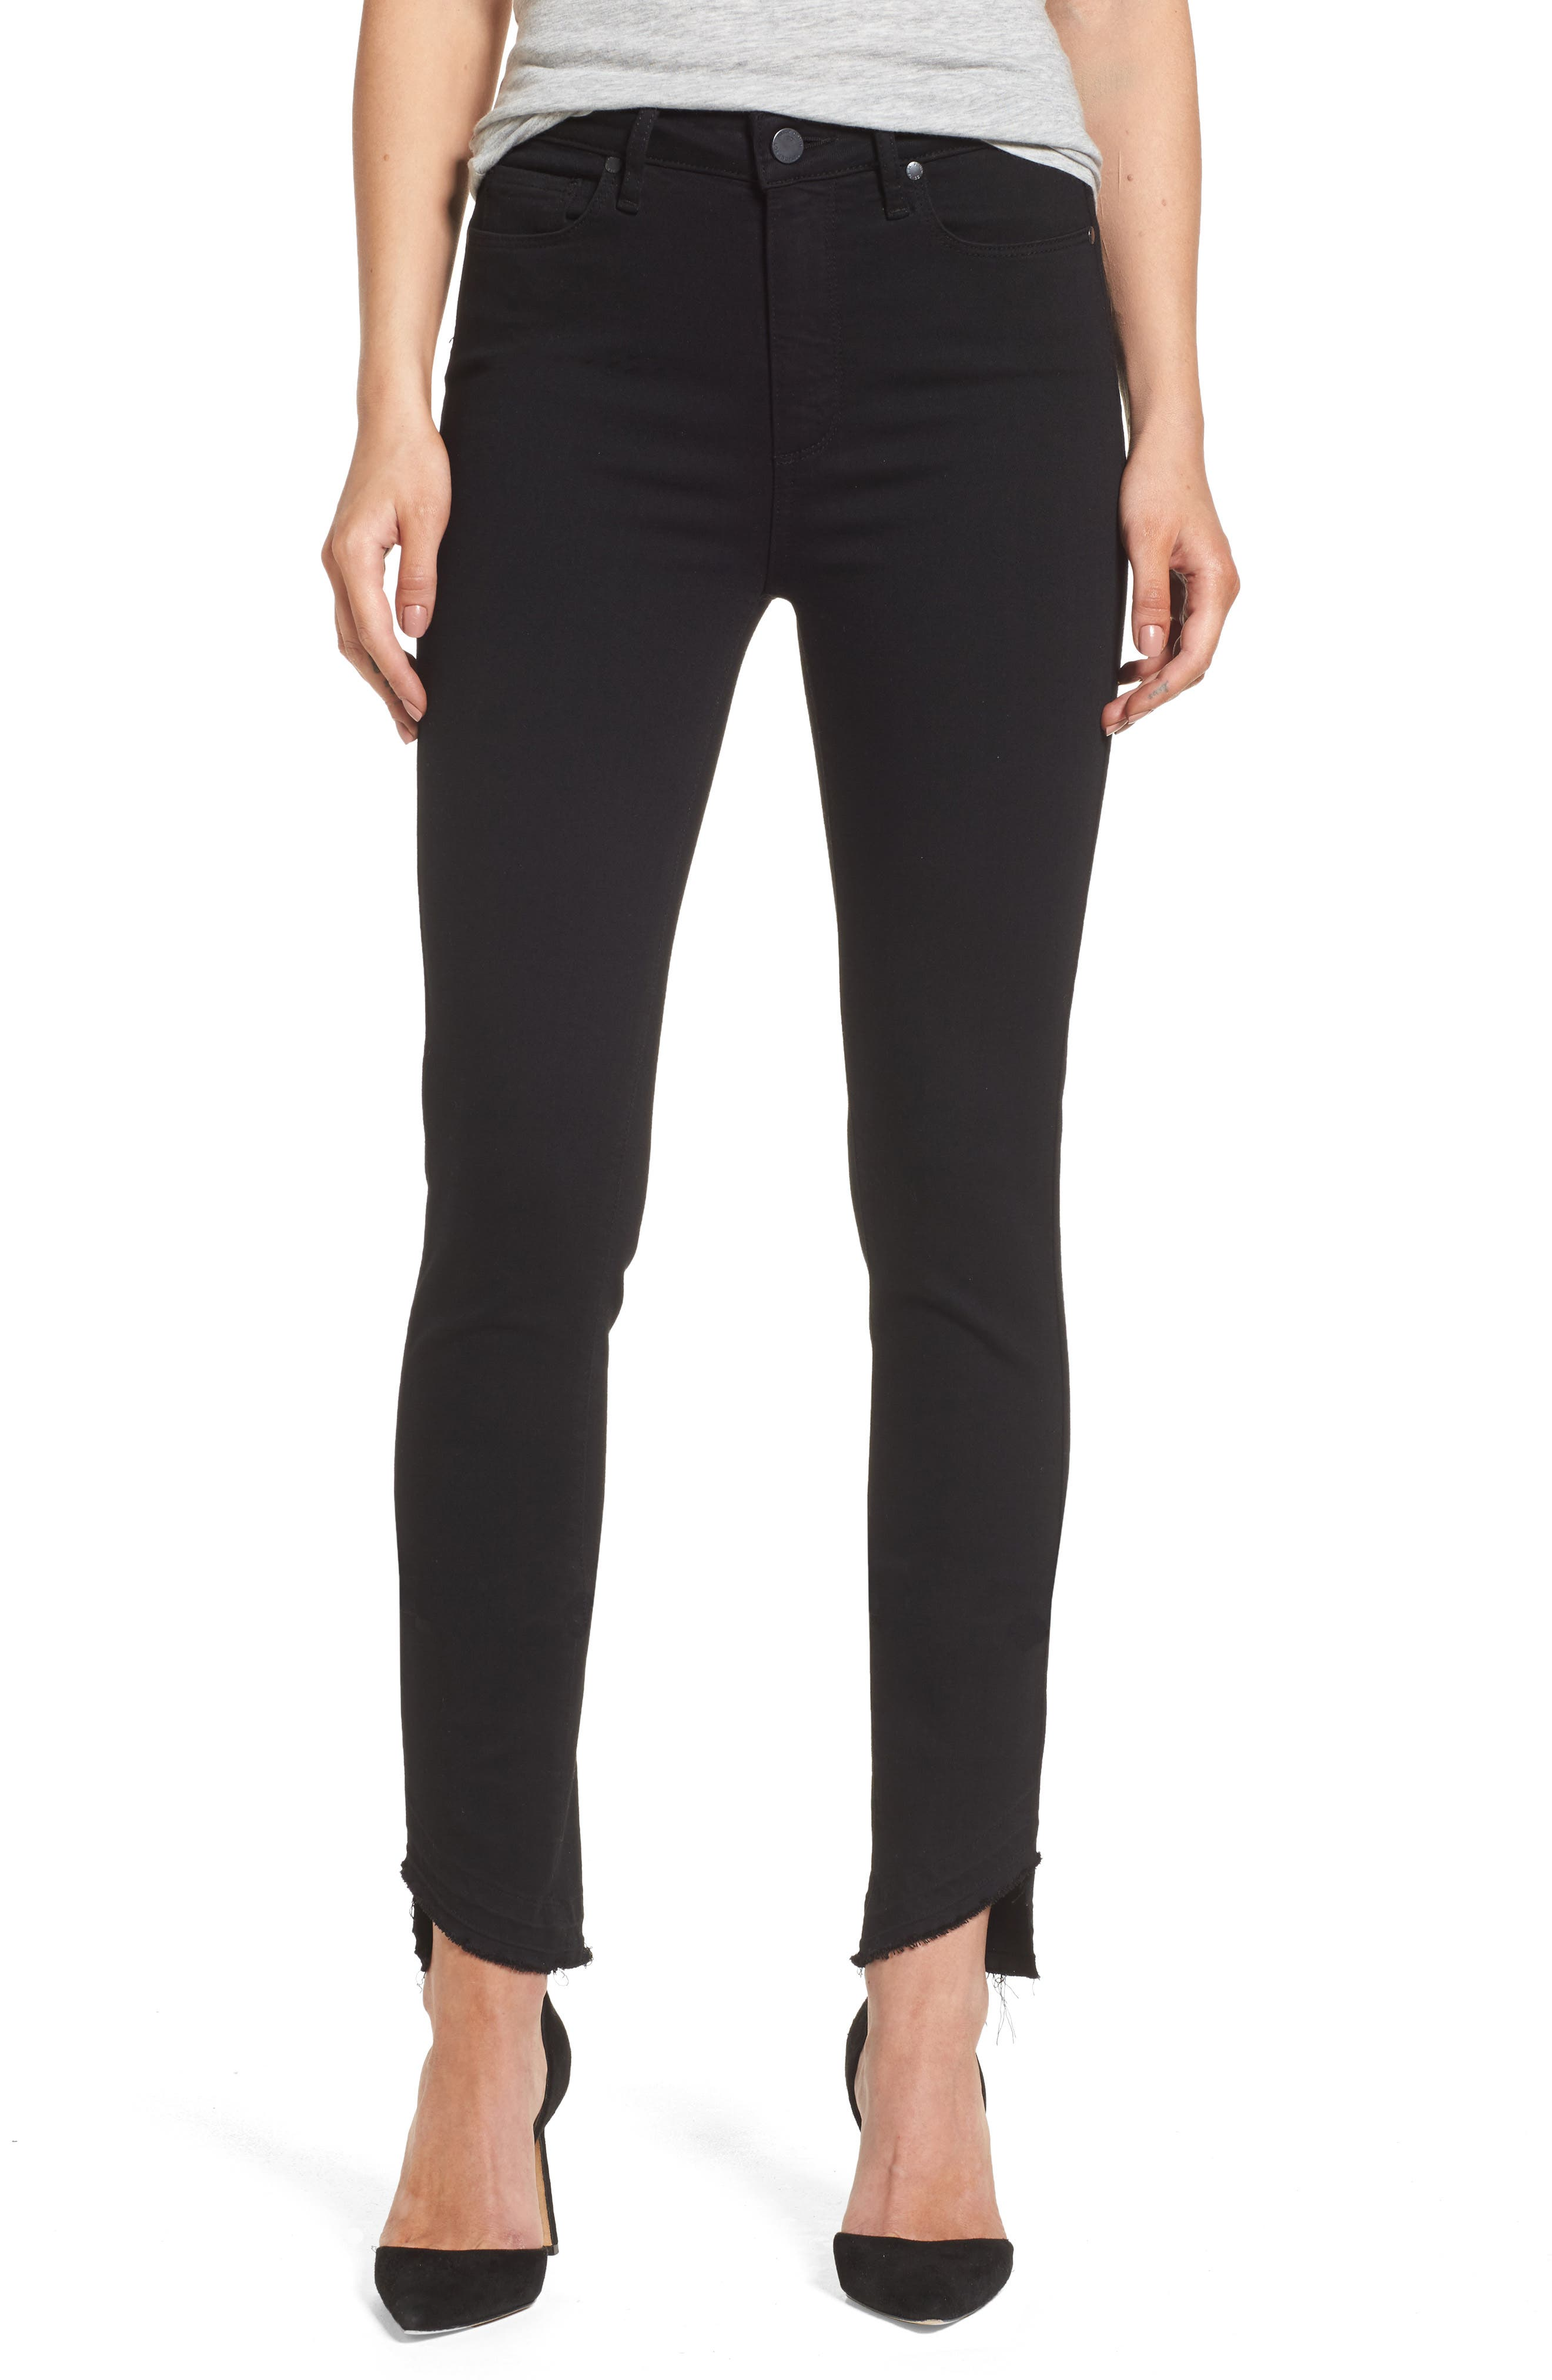 Alternate Image 1 Selected - PAIGE Transcend Hoxton High Waist Undone Hem Skinny Jeans (Black Shadow)